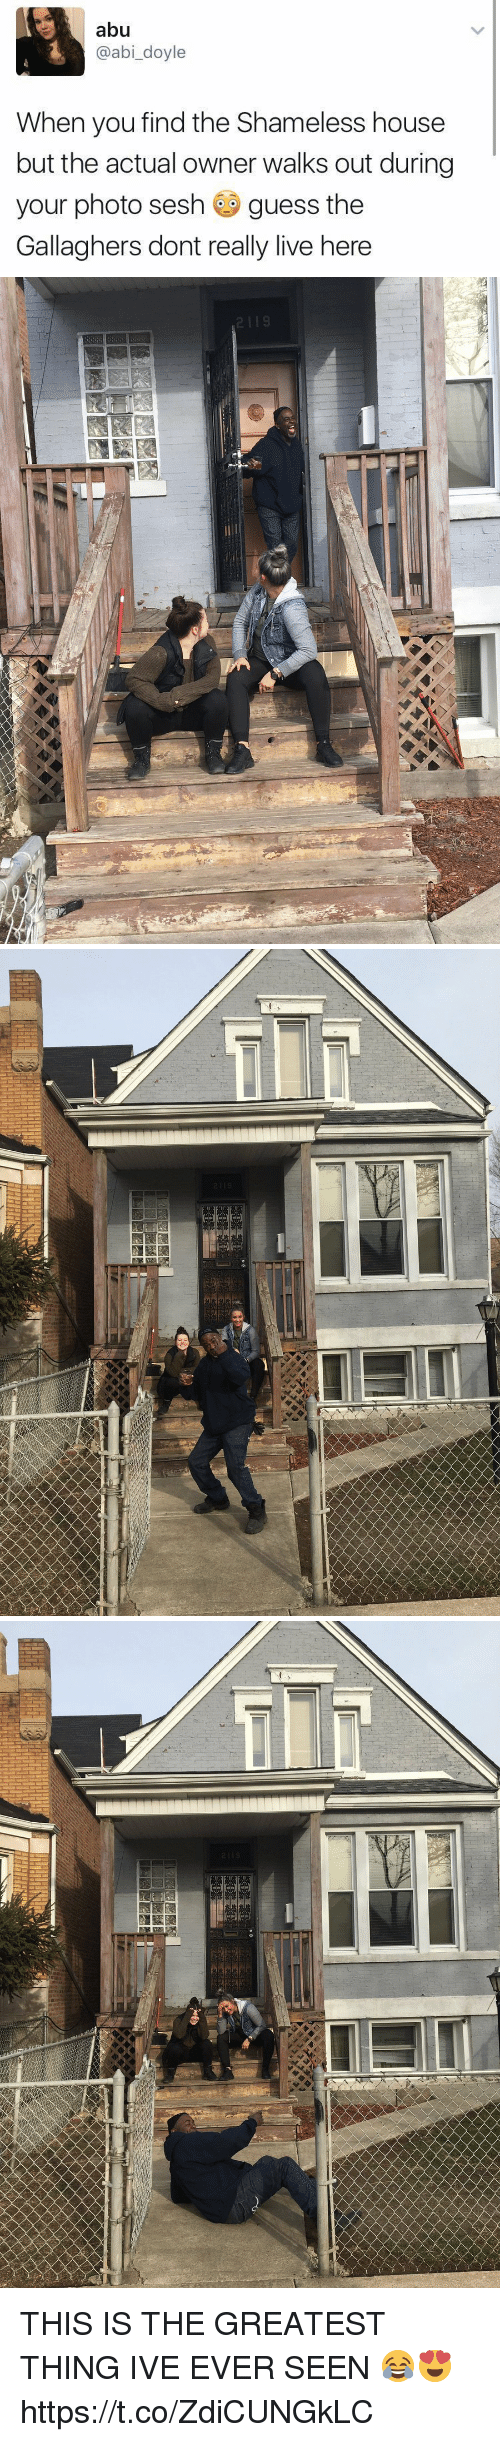 abu: abu  @abi_doyle  When you find the Shameless house  but the actual owner walks out during  your photo sesh guess the  Gallaghers dont really live here   2119 THIS IS THE GREATEST THING IVE EVER SEEN 😂😍 https://t.co/ZdiCUNGkLC